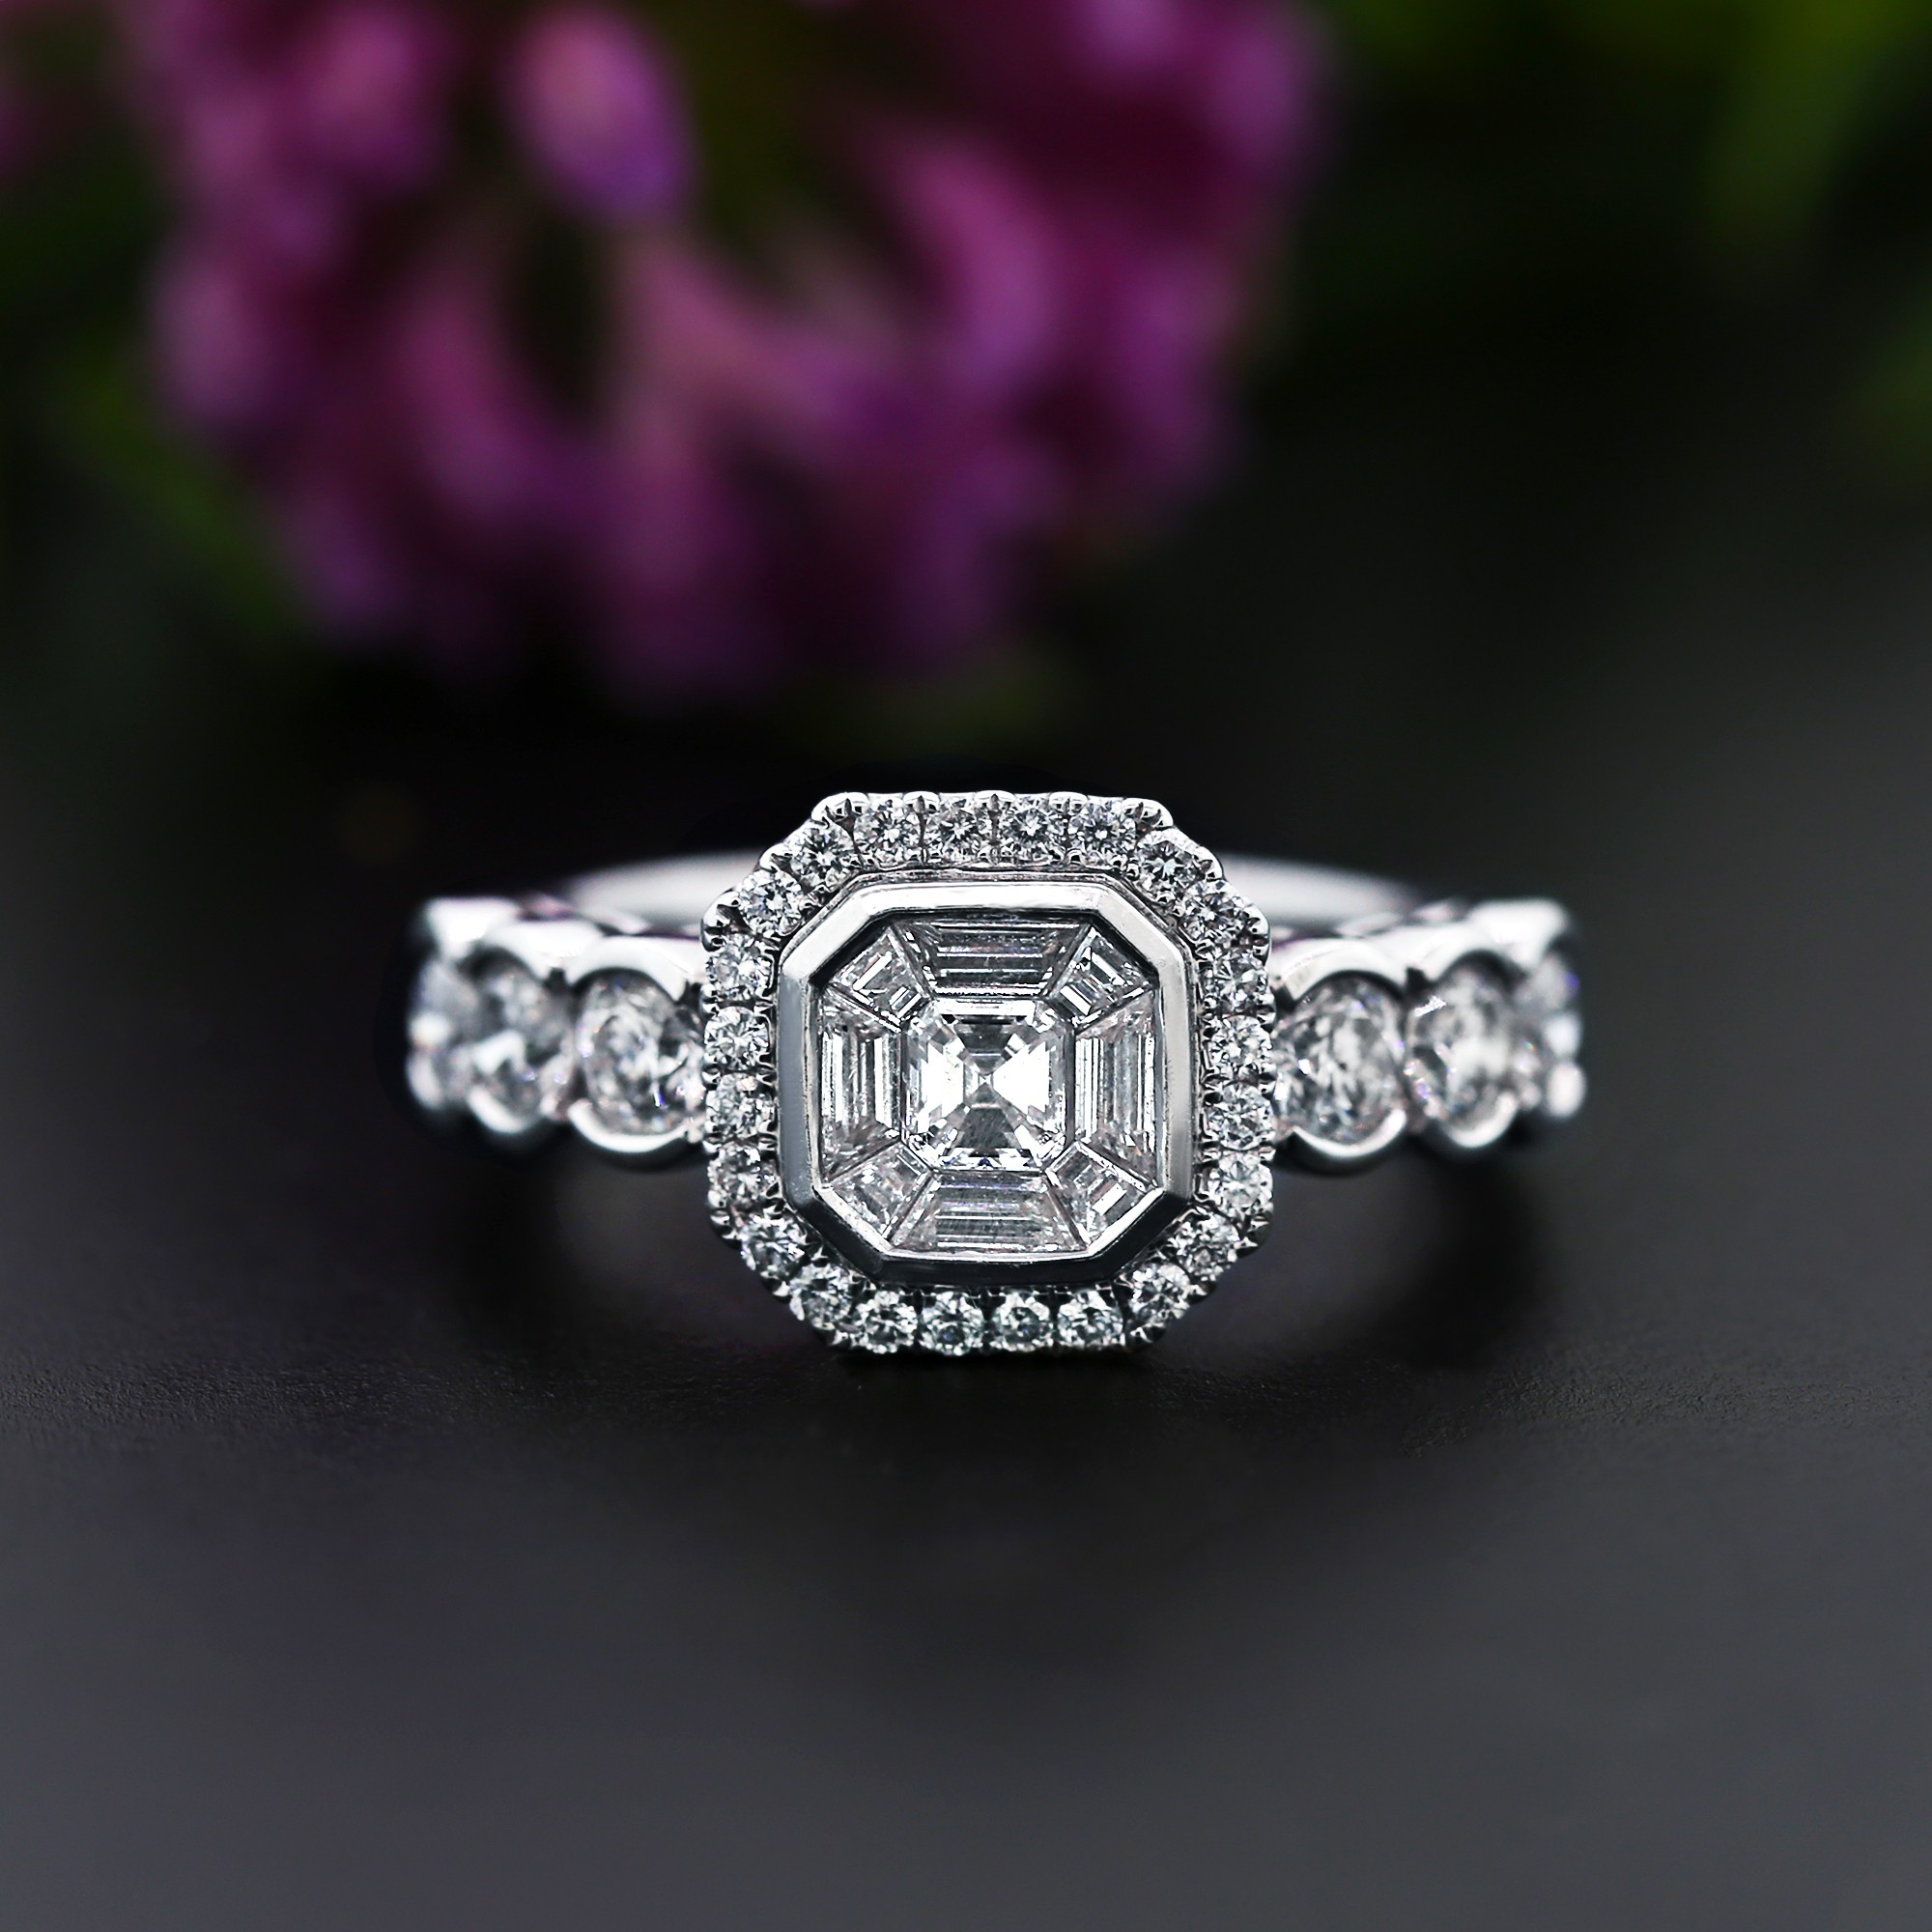 Engagement Ring with 1.50ct of Total Diamond Weight crafted in 18k WG